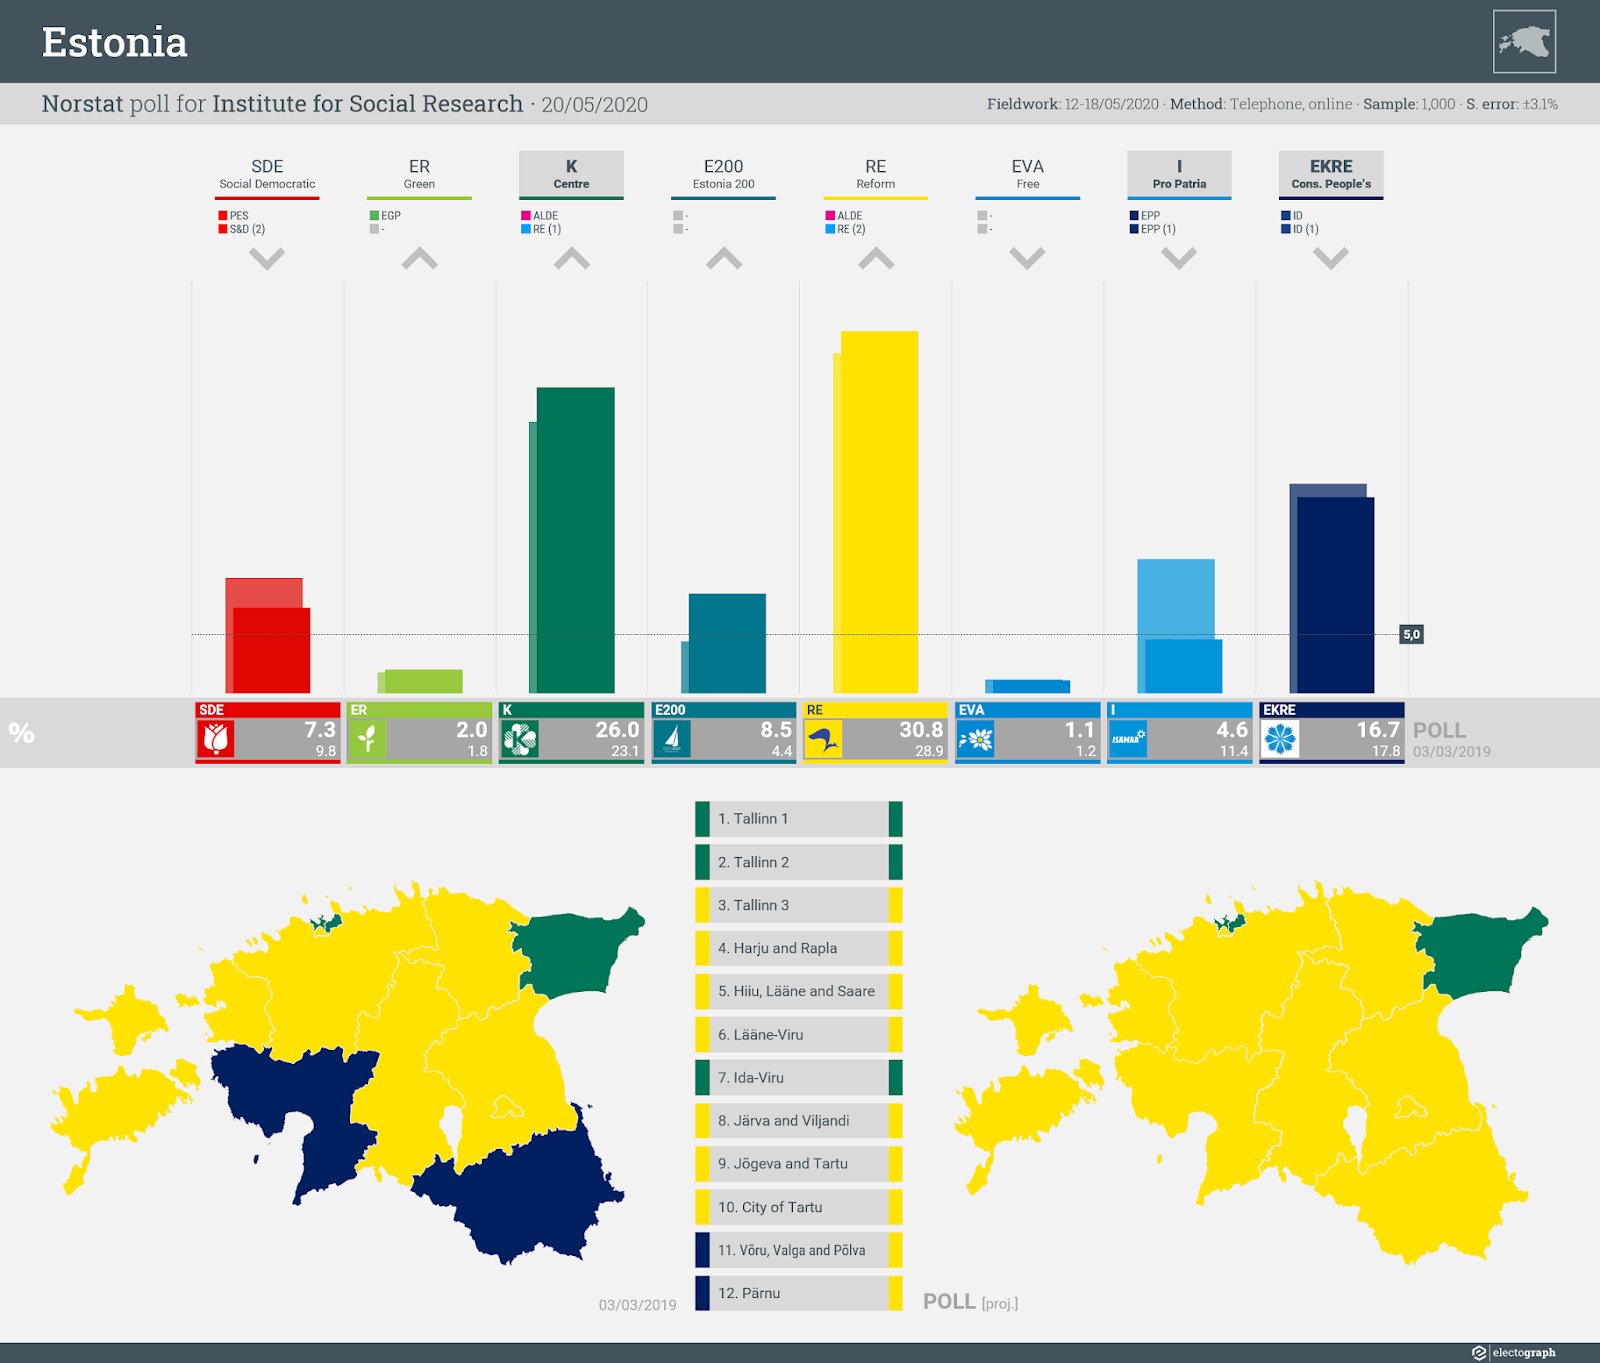 ESTONIA: Norstat poll chart for Institute for Social Research, 20 May 2020